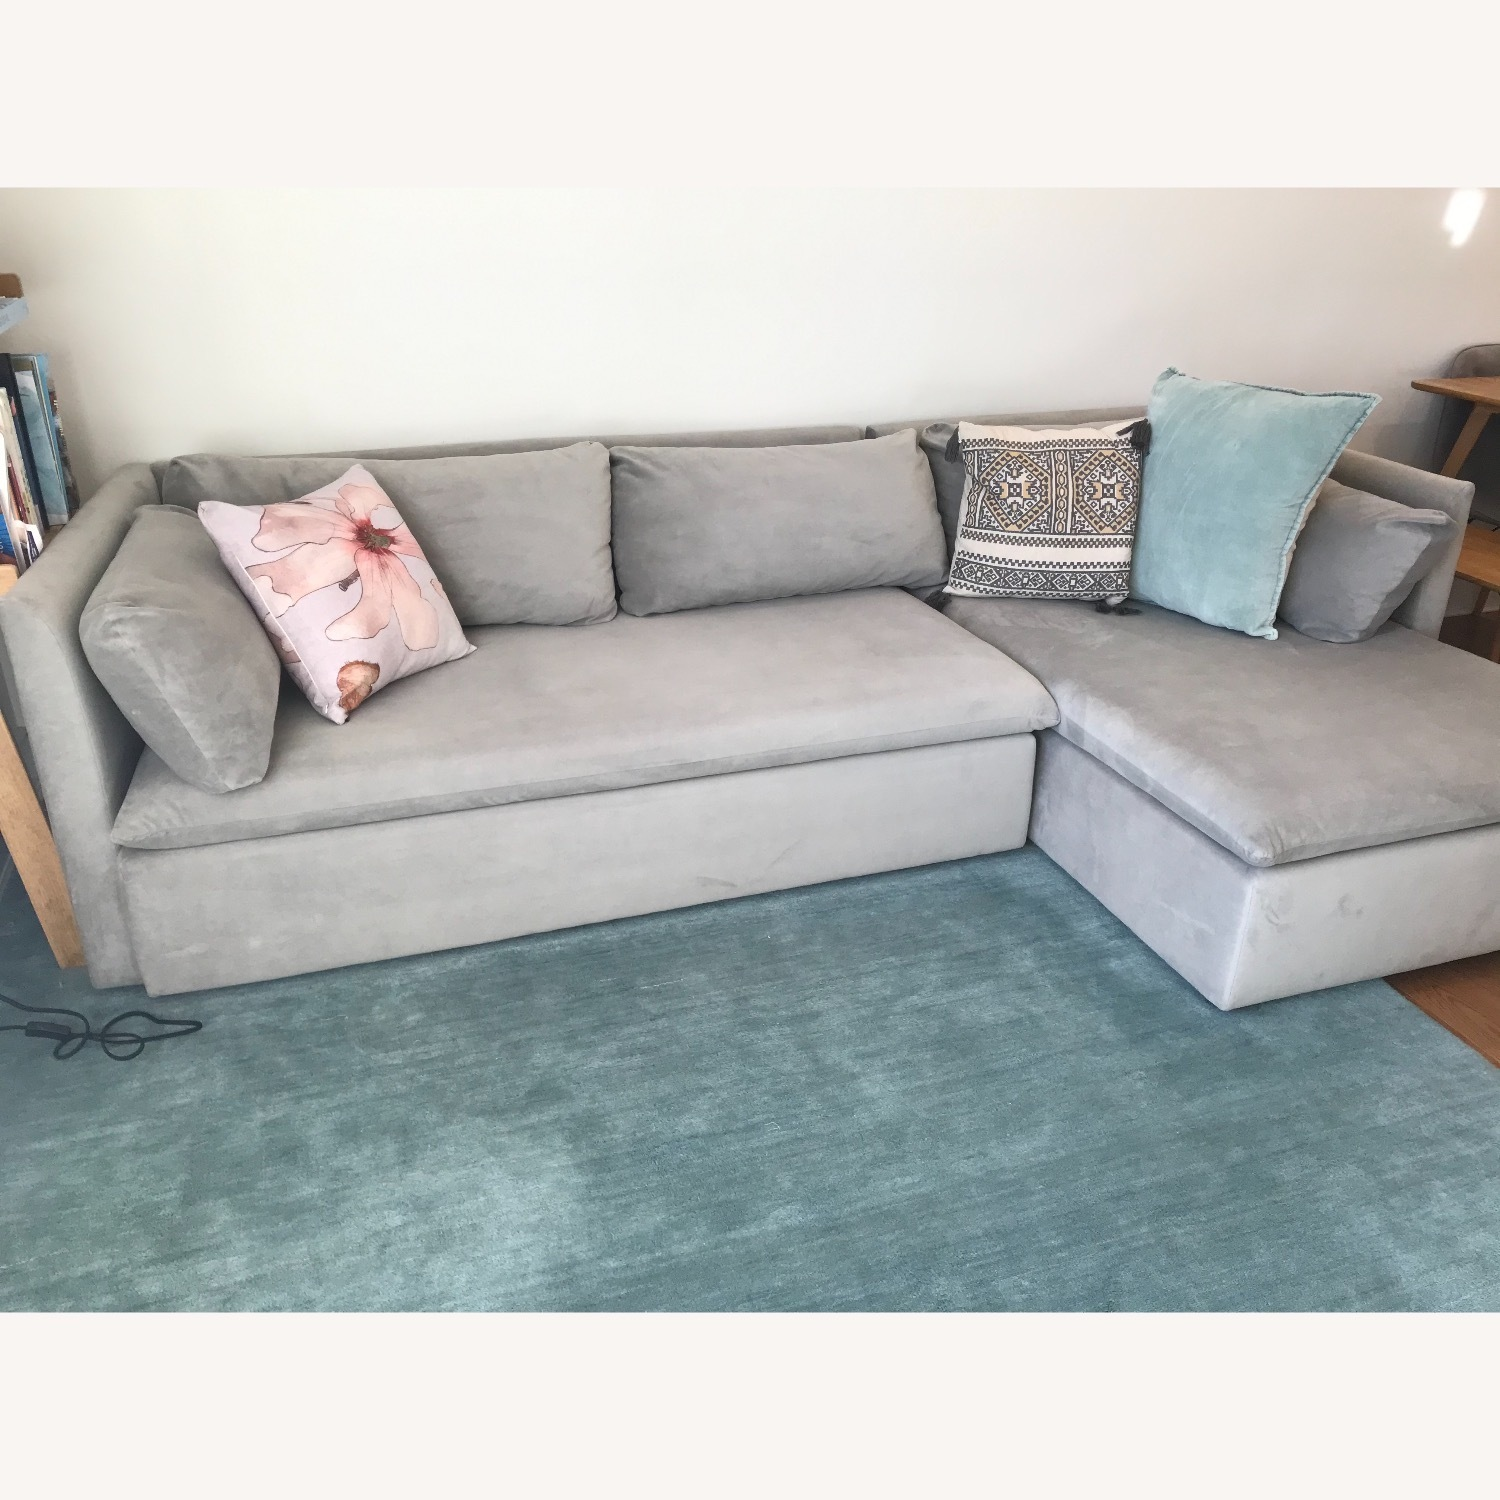 West Elm Shelter Sectional Sofa Dove Gray - image-7